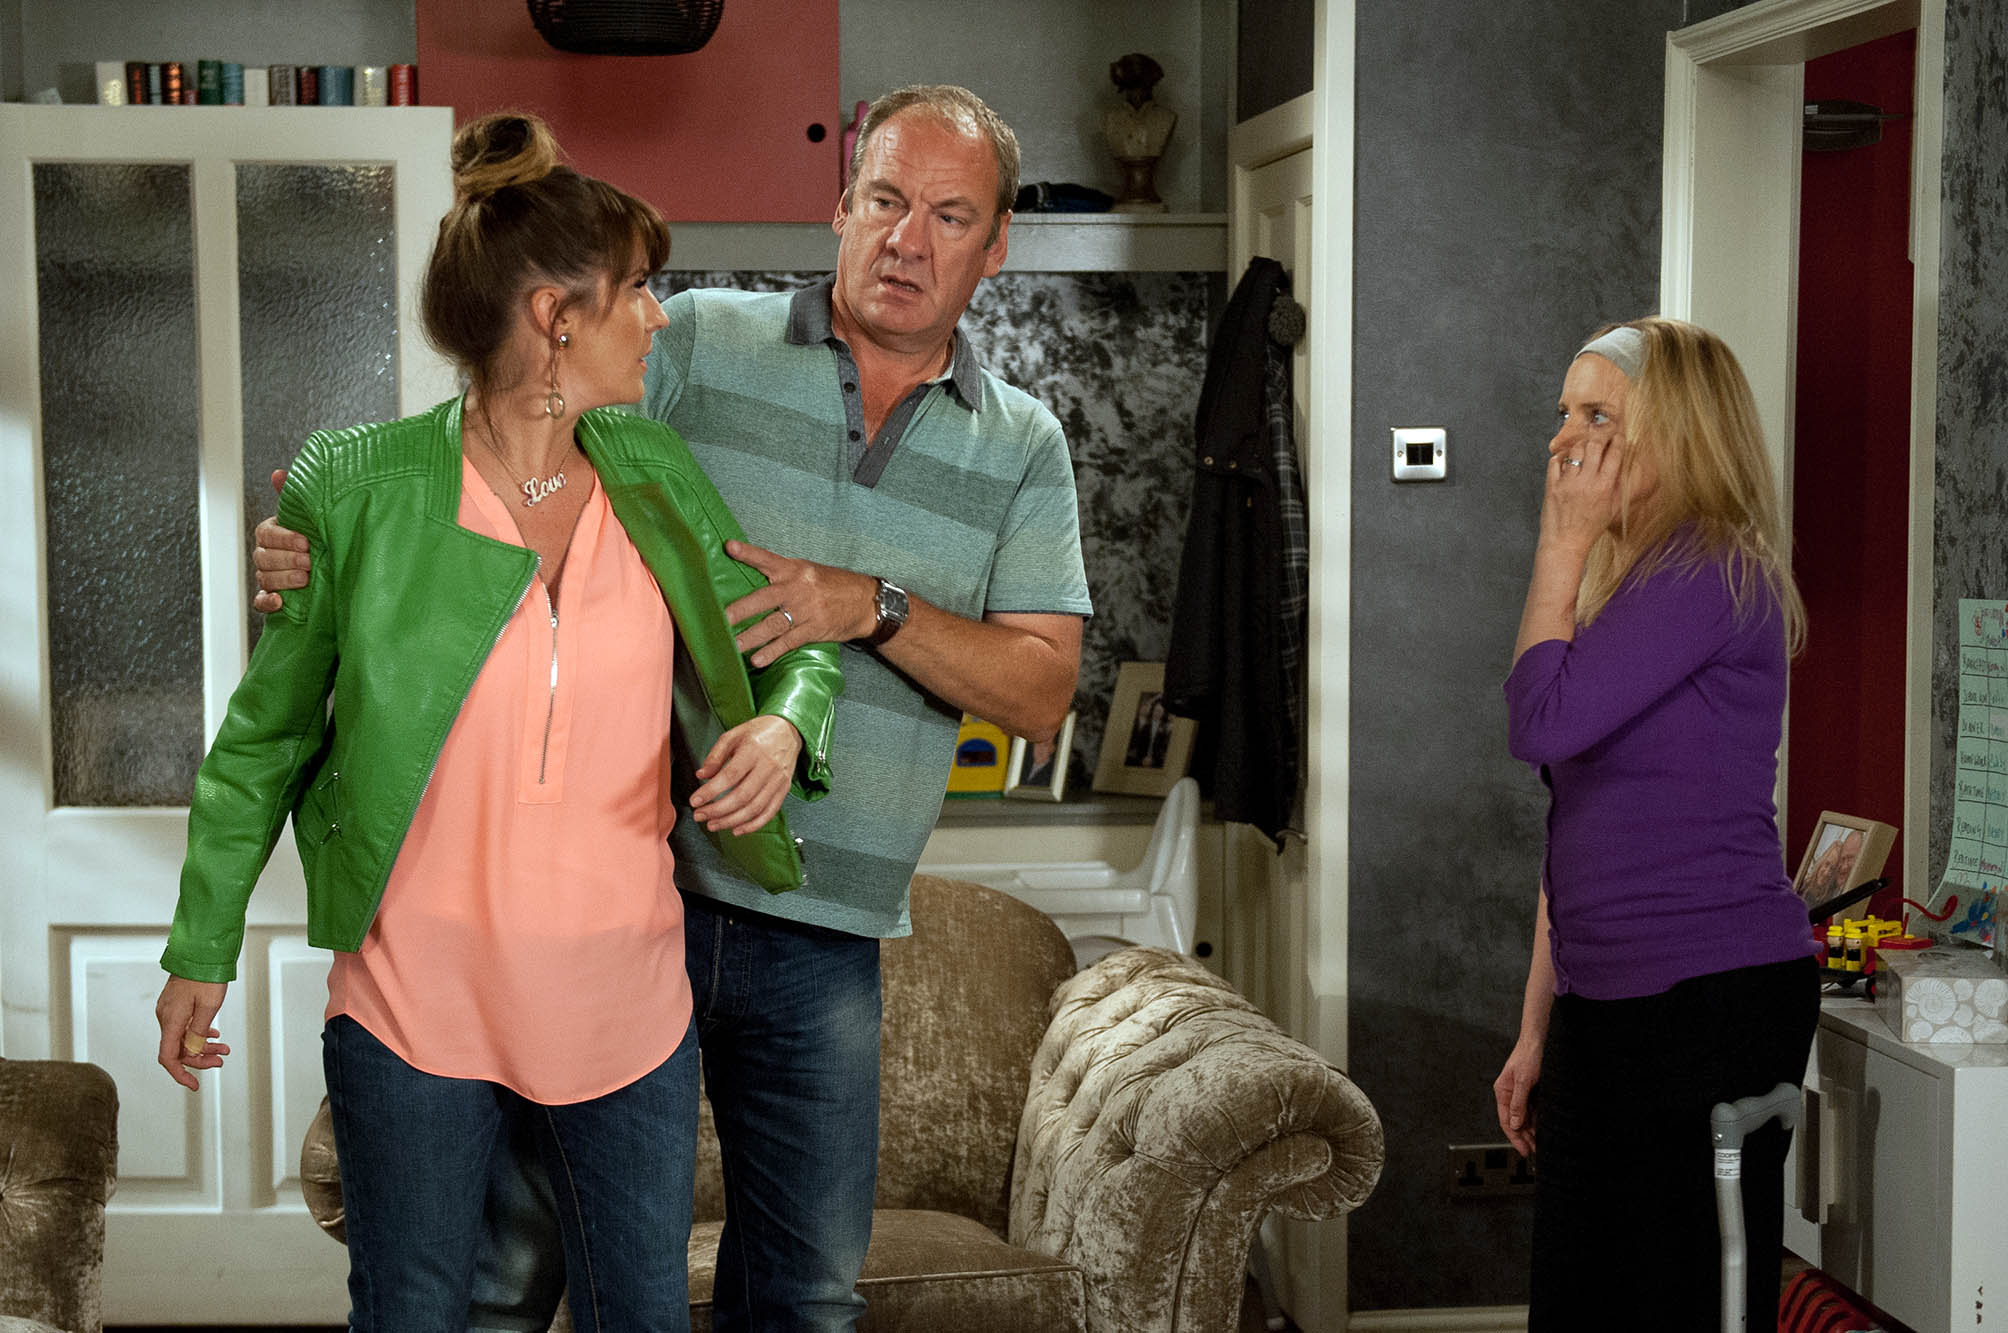 FROM ITV STRICT EMBARGO - NO USE BEFORE TUESDAY 30 AUGUST 2016 Emmerdale - 7608 Tuesday 6th September 2016 Dan and Nicola King [NICOLA WHEELER] attempt to heal their relationships. But when Dan admits to Kerry Wyatt [LAURA NORTON], Nicola made the pass at him, Kerry heads to confront her. Kerry slaps Nicola and balls her fist for another attack but hesitates in the face of Nicola's disability. Nicola explains to Jimmy King [NICK MILES] how she's recently felt like his patient, not his wife. Picture contact: david.crook@itv.com on 0161 952 6214 Photographer - Amy Brammall This photograph is (C) ITV Plc and can only be reproduced for editorial purposes directly in connection with the programme or event mentioned above, or ITV plc. Once made available by ITV plc Picture Desk, this photograph can be reproduced once only up until the transmission [TX] date and no reproduction fee will be charged. Any subsequent usage may incur a fee. This photograph must not be manipulated [excluding basic cropping] in a manner which alters the visual appearance of the person photographed deemed detrimental or inappropriate by ITV plc Picture Desk. This photograph must not be syndicated to any other company, publication or website, or permanently archived, without the express written permission of ITV Plc Picture Desk. Full Terms and conditions are available on the website www.itvpictures.com